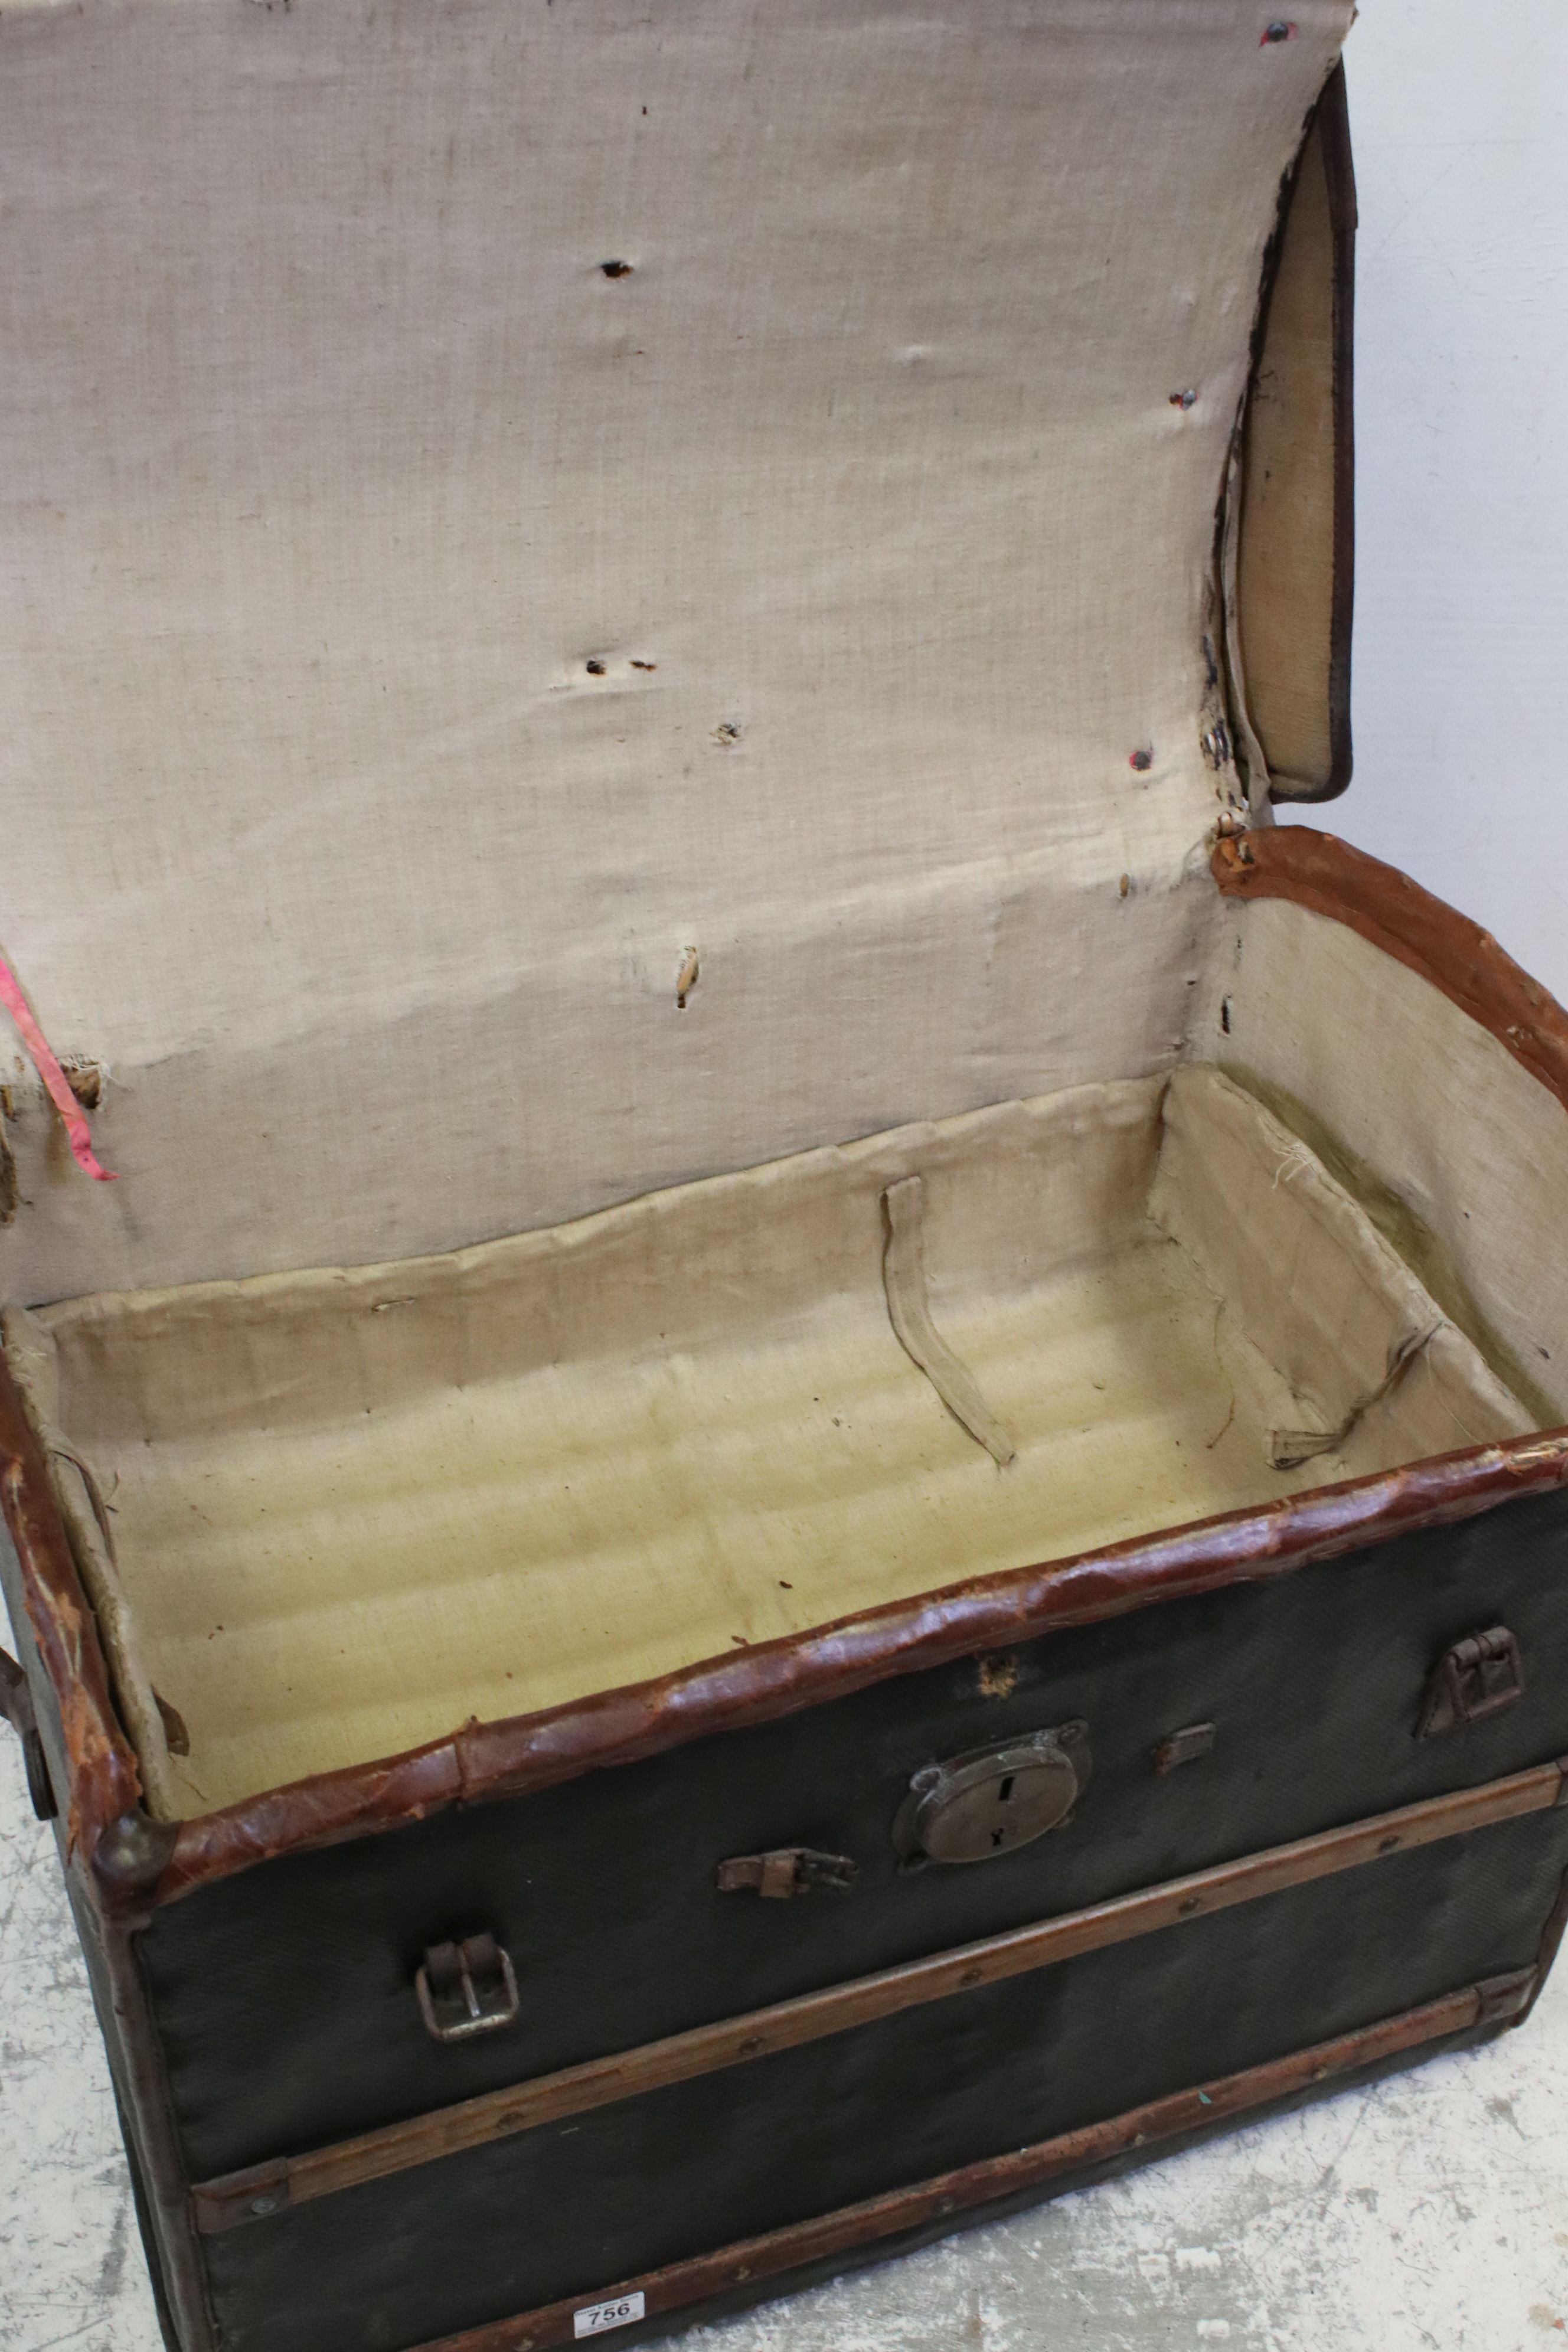 19th century Domed Top Wicker Leather Bound Travelling Trunk with Drop-in Tray, 82cms long x 66cms - Image 3 of 7